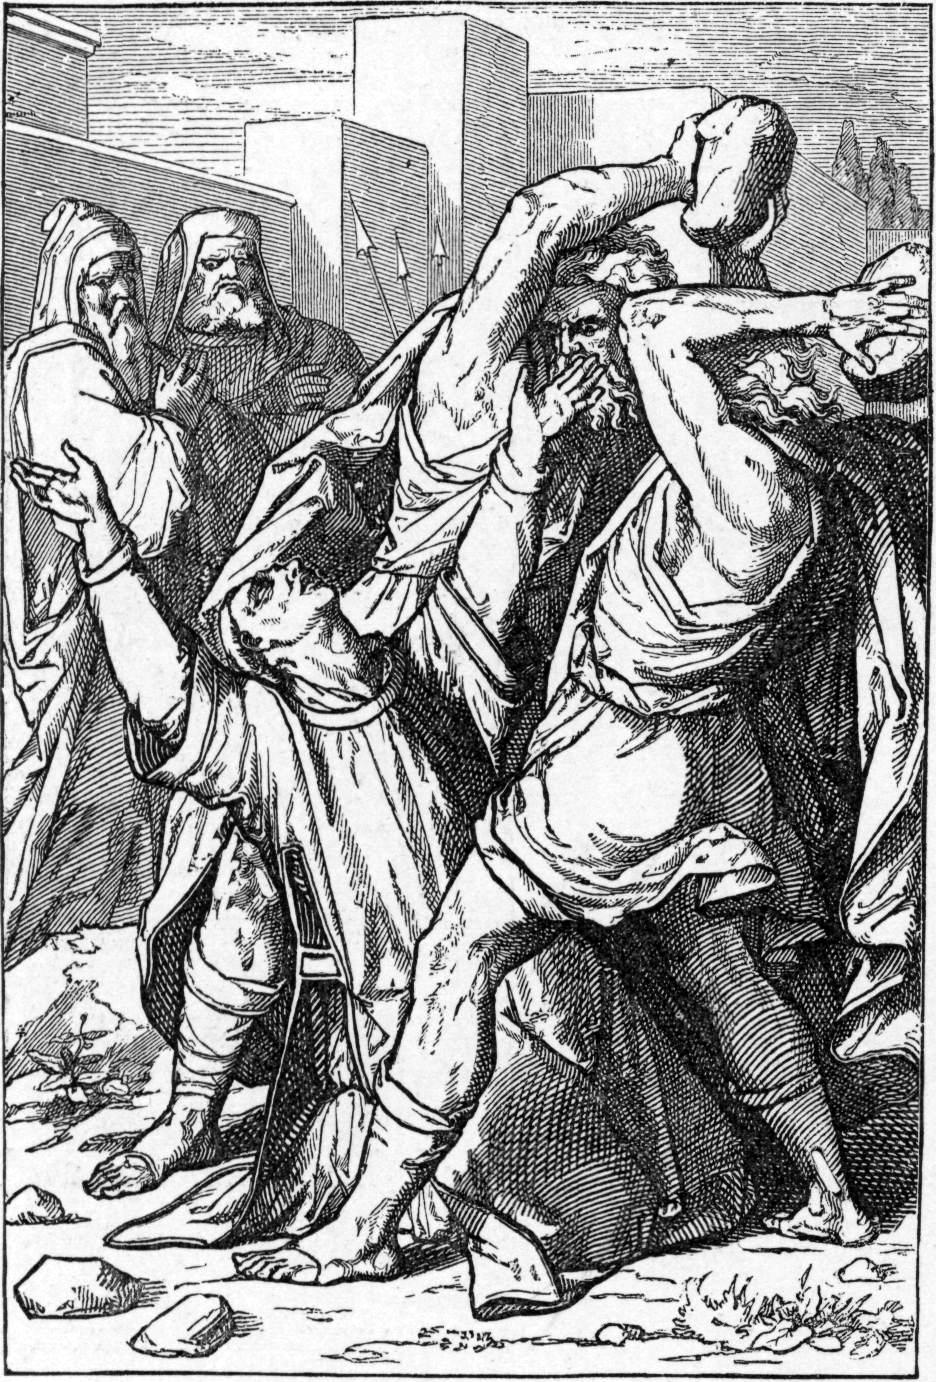 Sufferings, Glories, and Saving God's People: Joseph, Moses, and Jesus in Acts 7